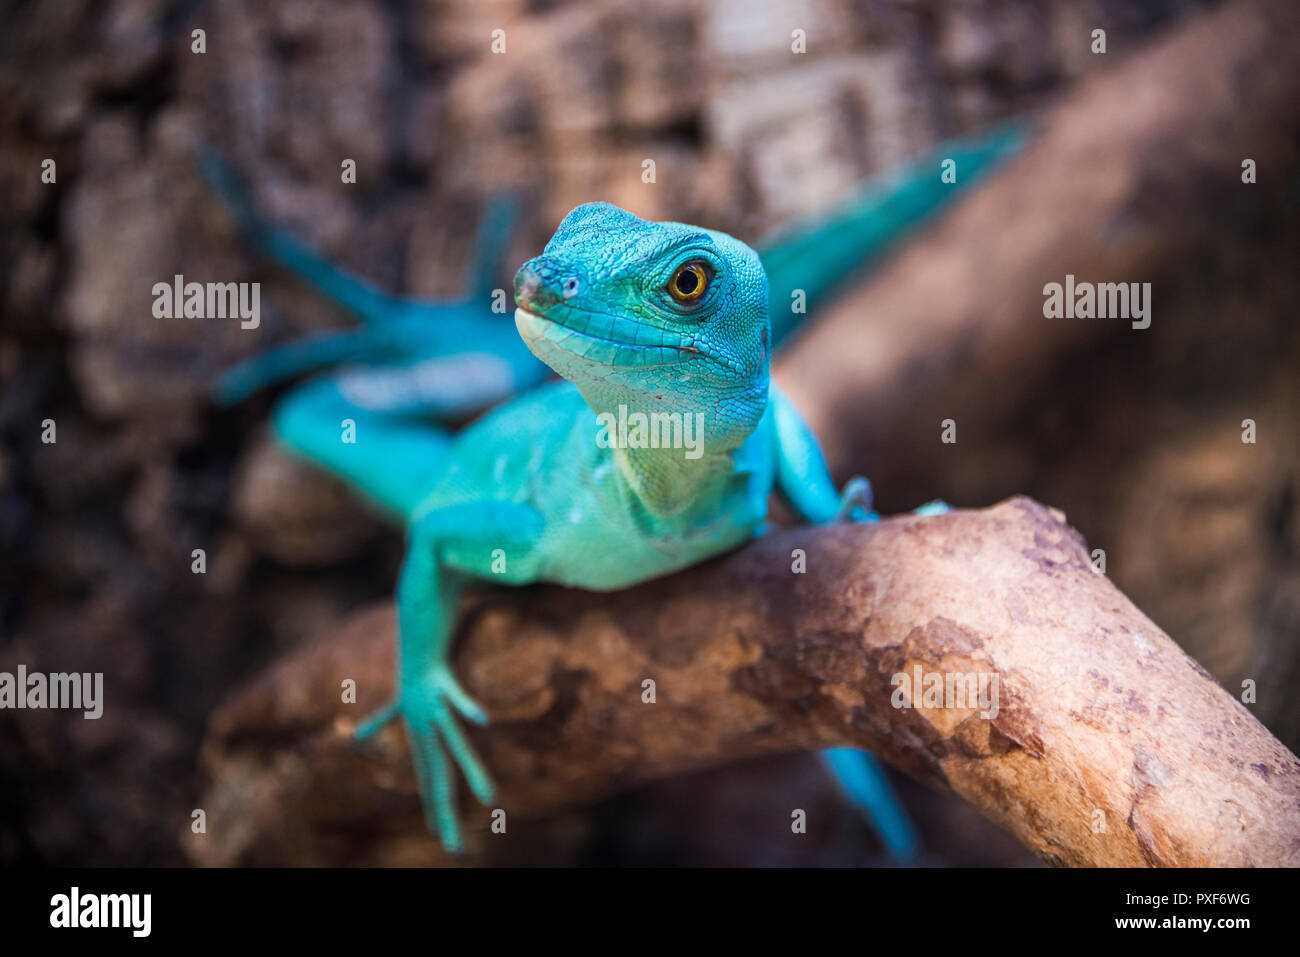 Green basilisk lizard in zoological garden close-up on a branch Stock Photo